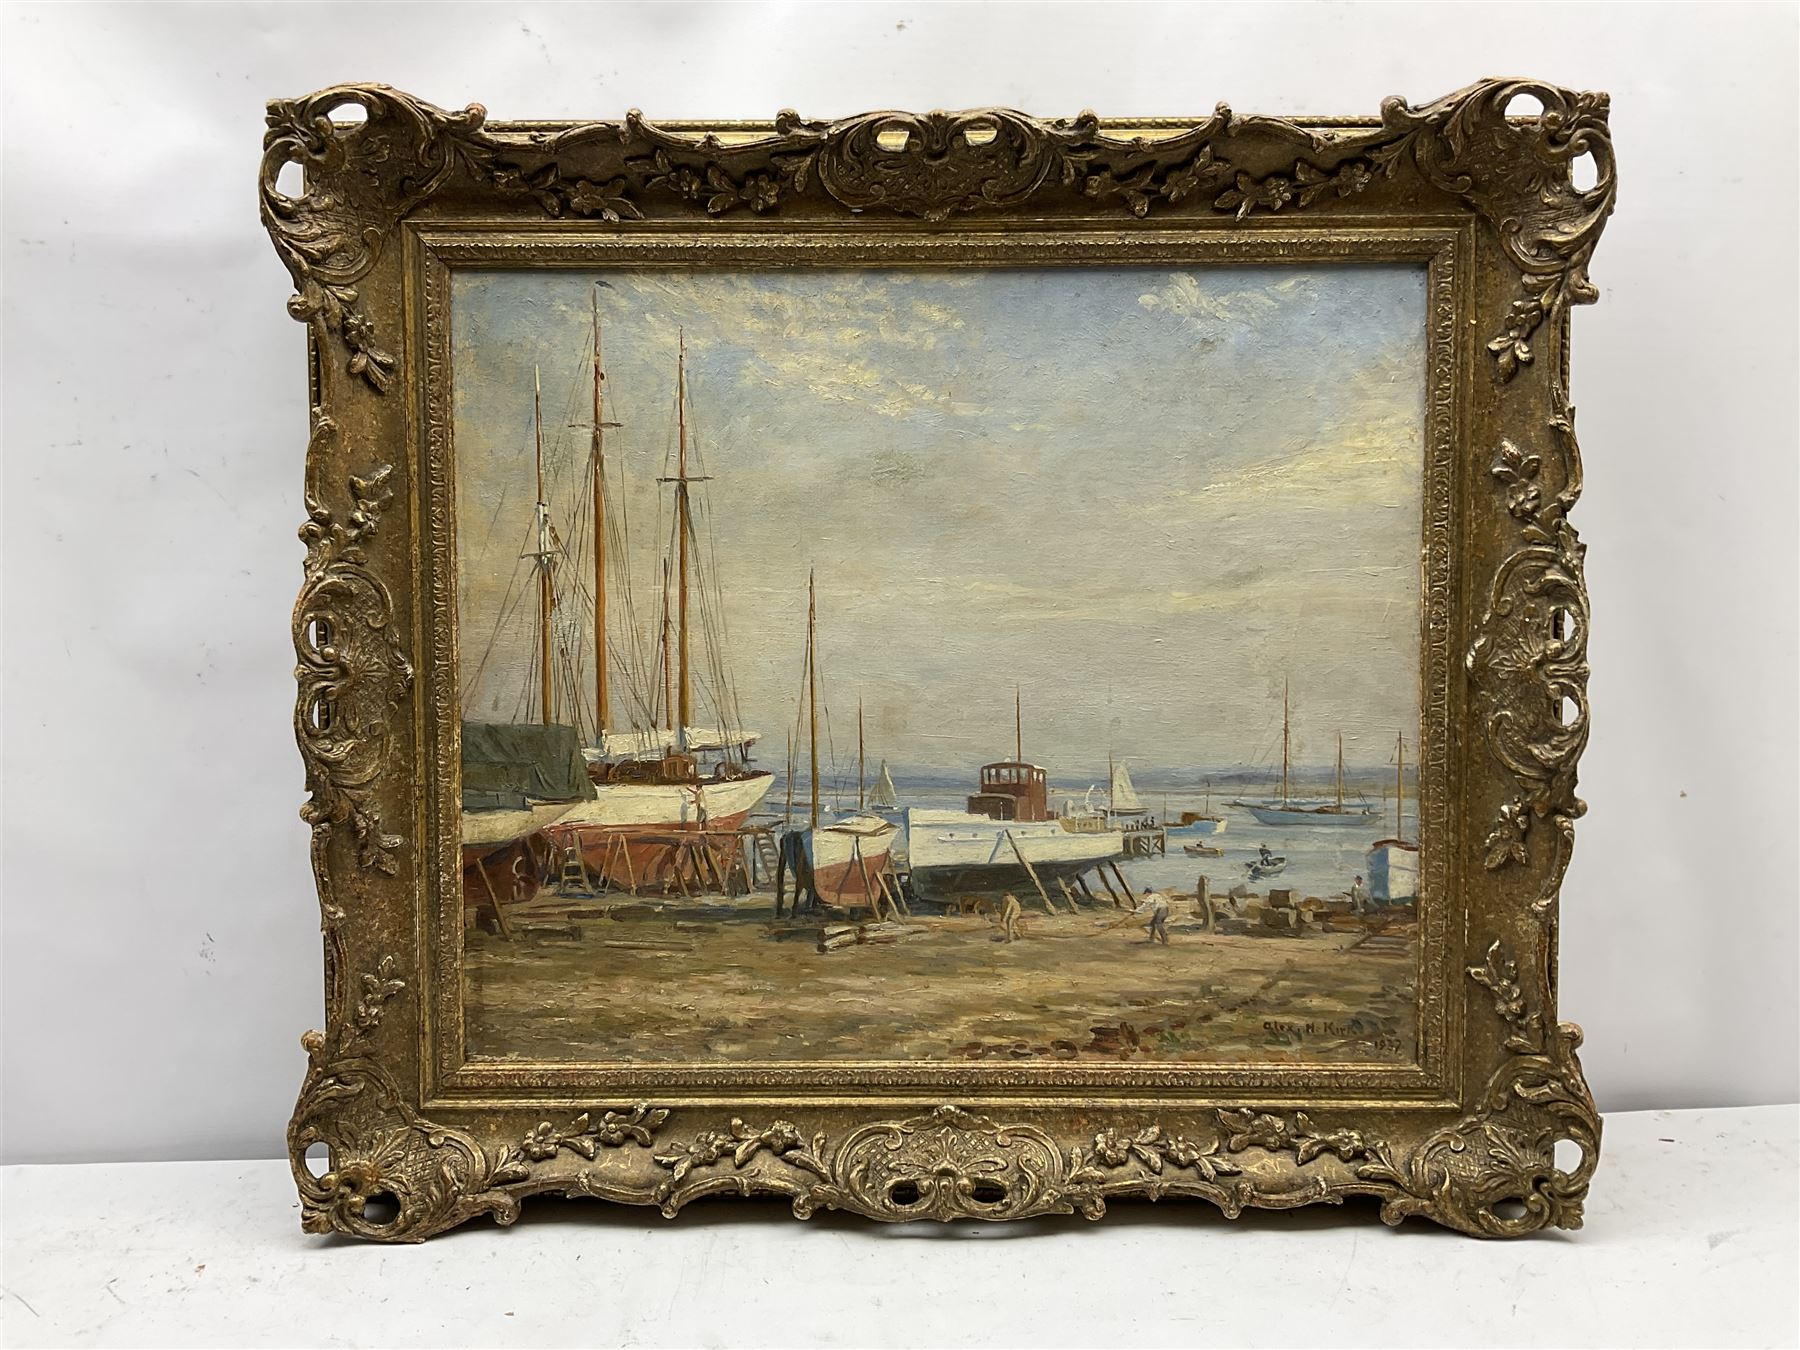 Alex H Kirk (British 1881-1950): Boat Maintenance on the Banks of an Estuary - Image 2 of 4